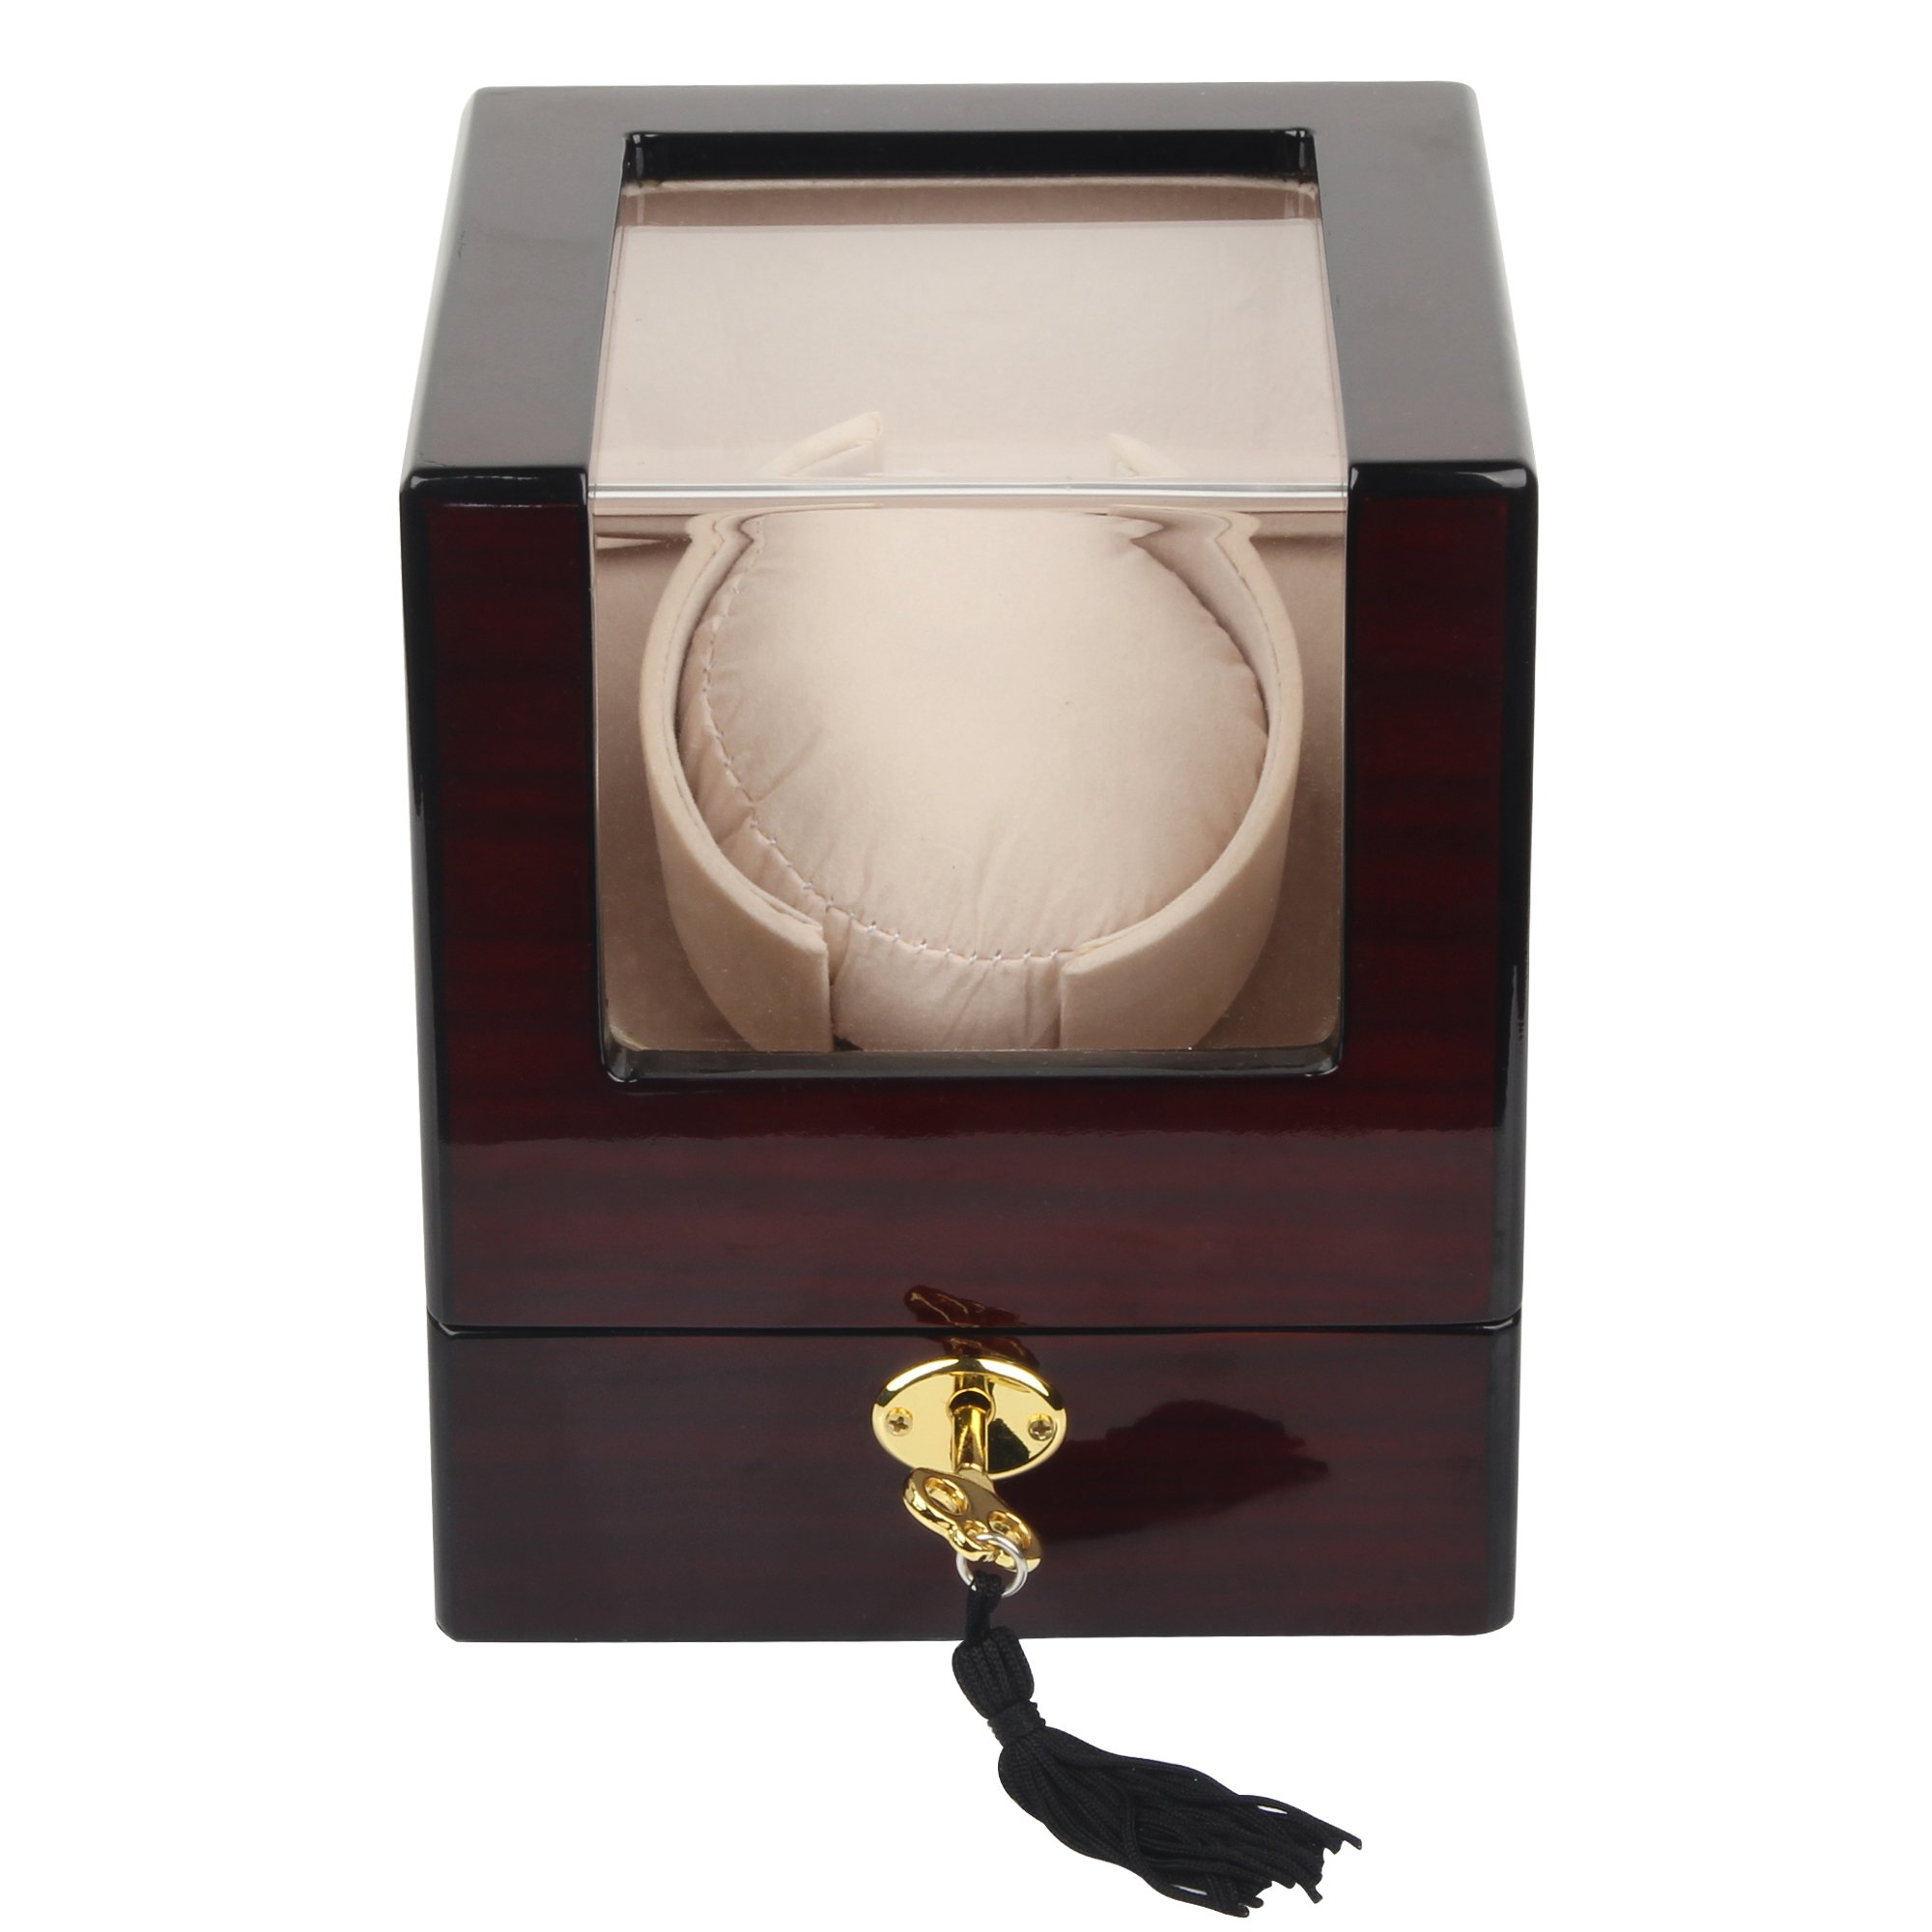 Kendal Top Quality Single Wooden Watch Winder with Advanced Control & Quiet Japanese Motor W1+0cbk